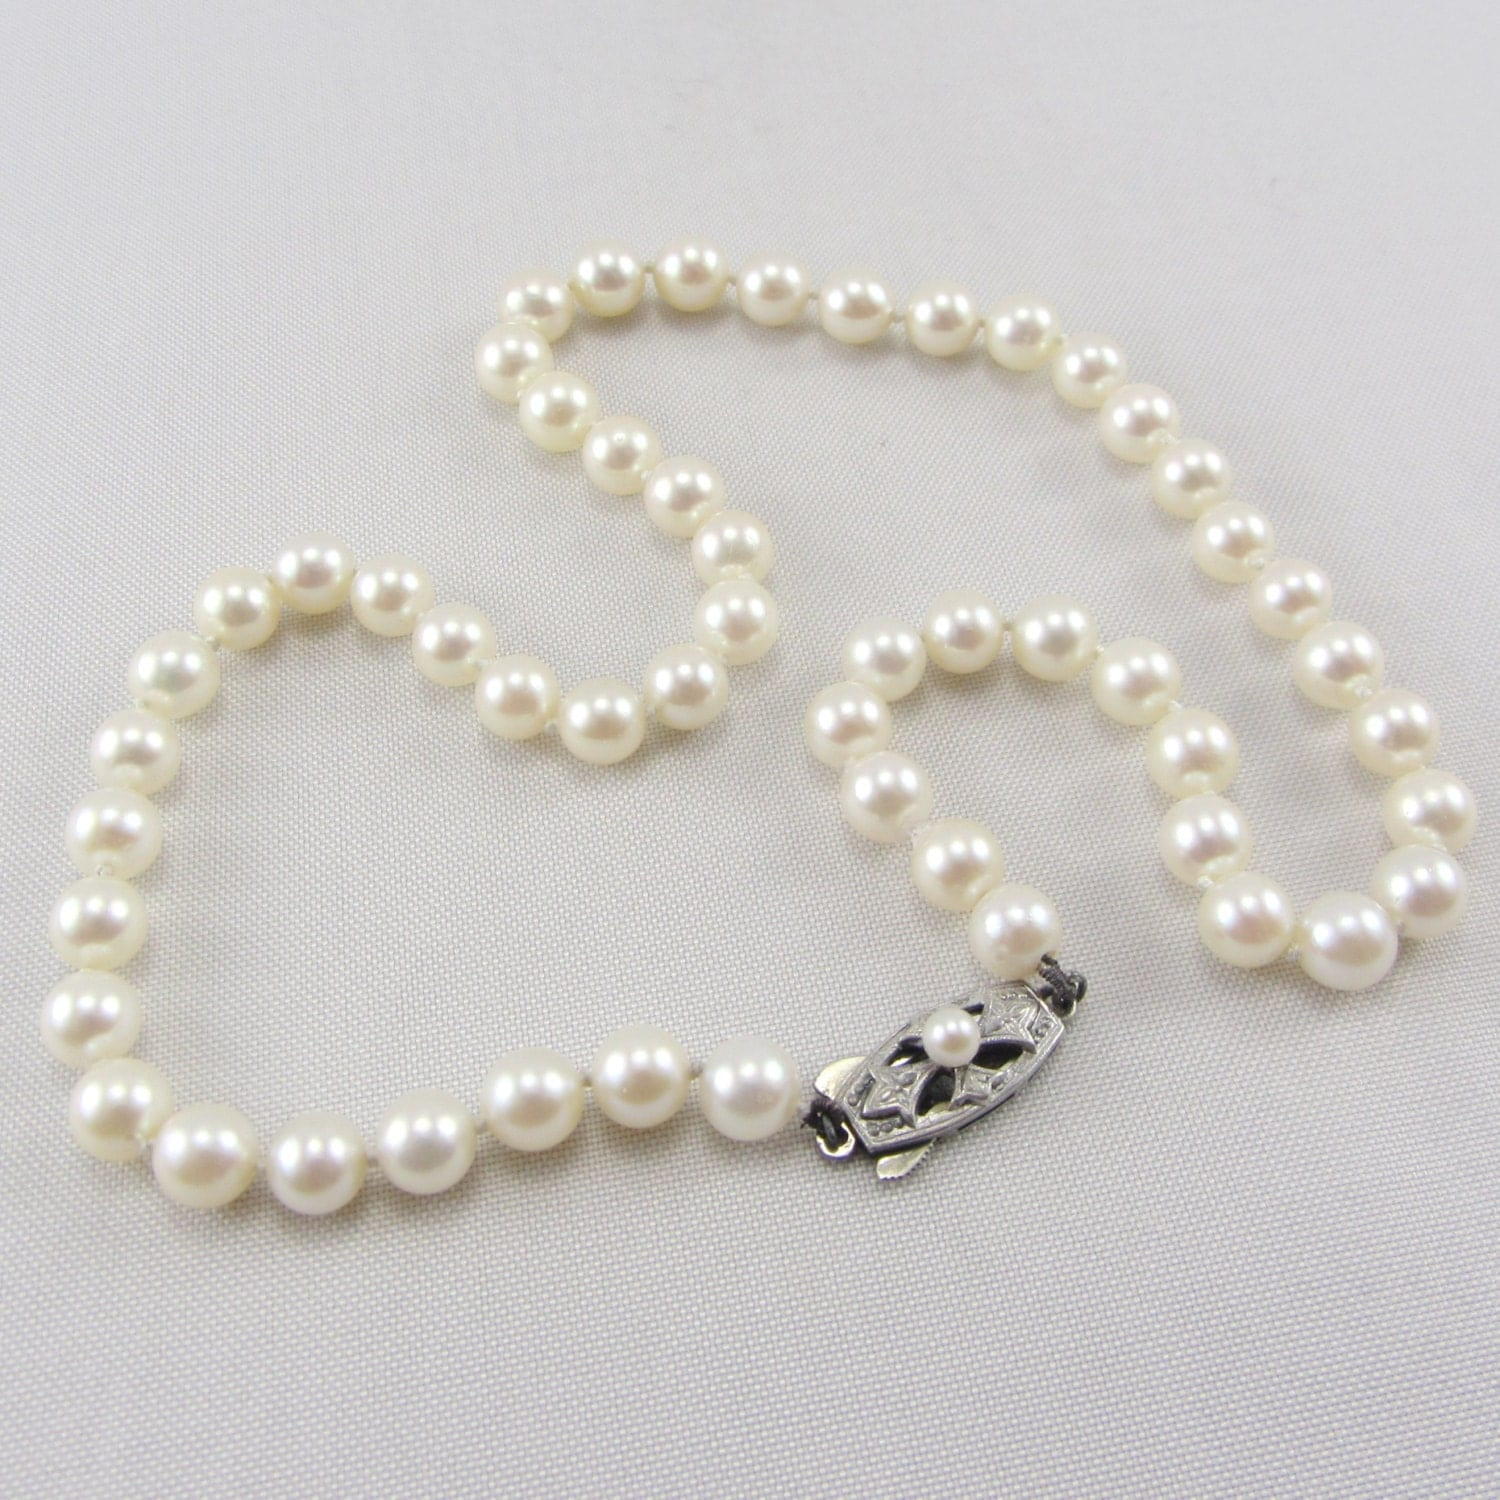 Vintage Pearl Choker Necklace: RESERVED LISTING Vintage Mikimoto Pearl Necklace With